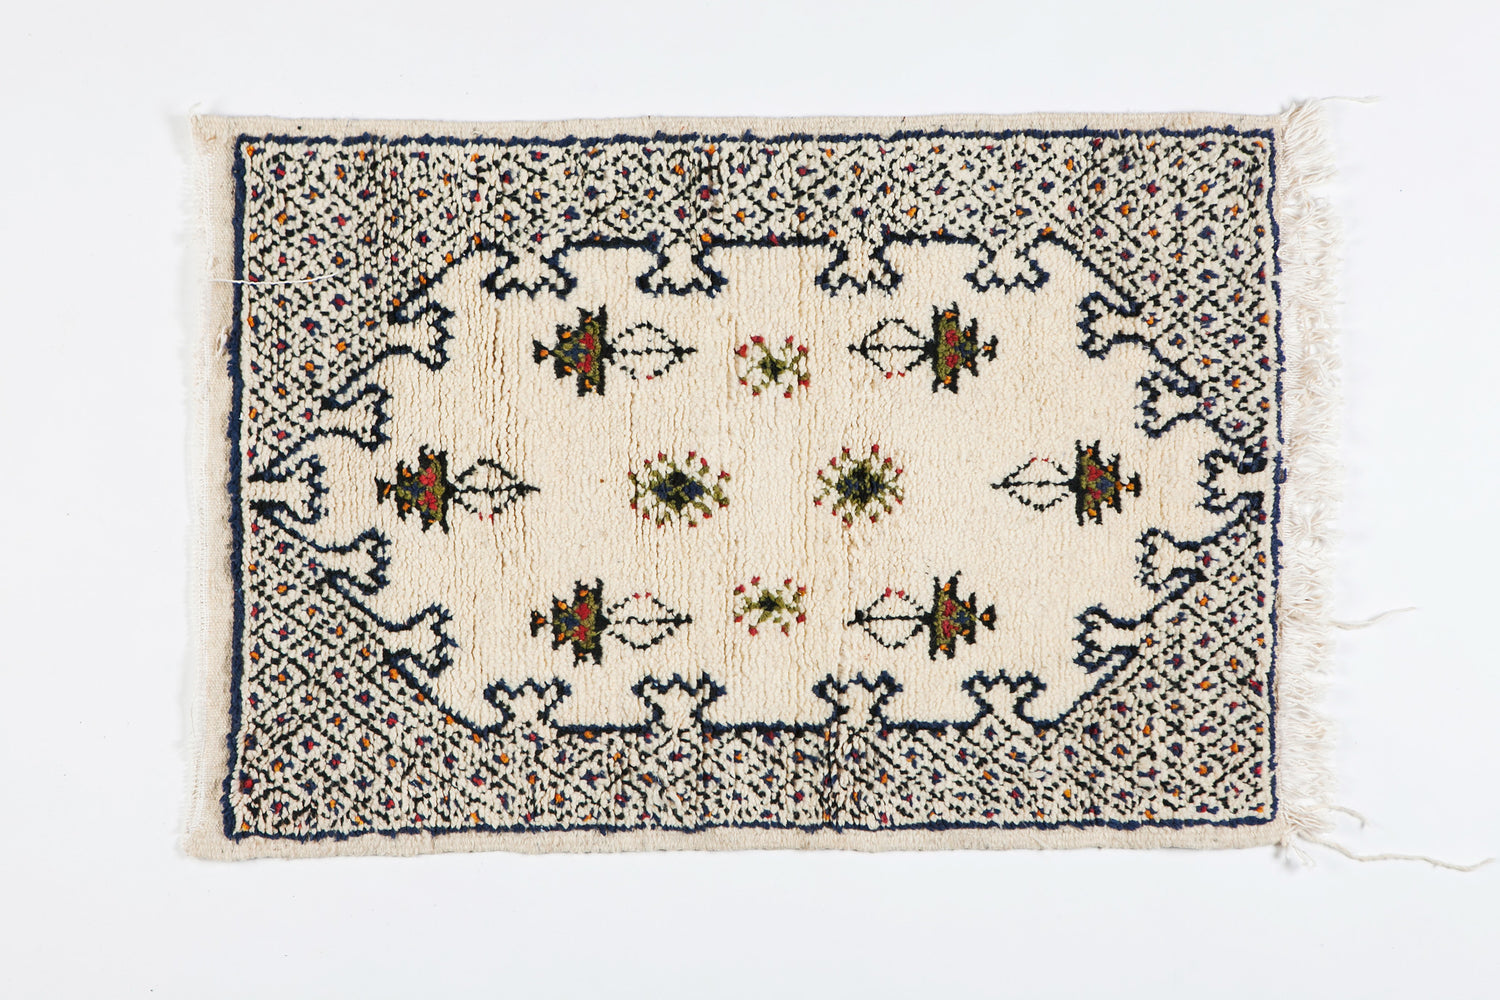 Berber Small Rug - Handwoven Wool with Organic White Dye